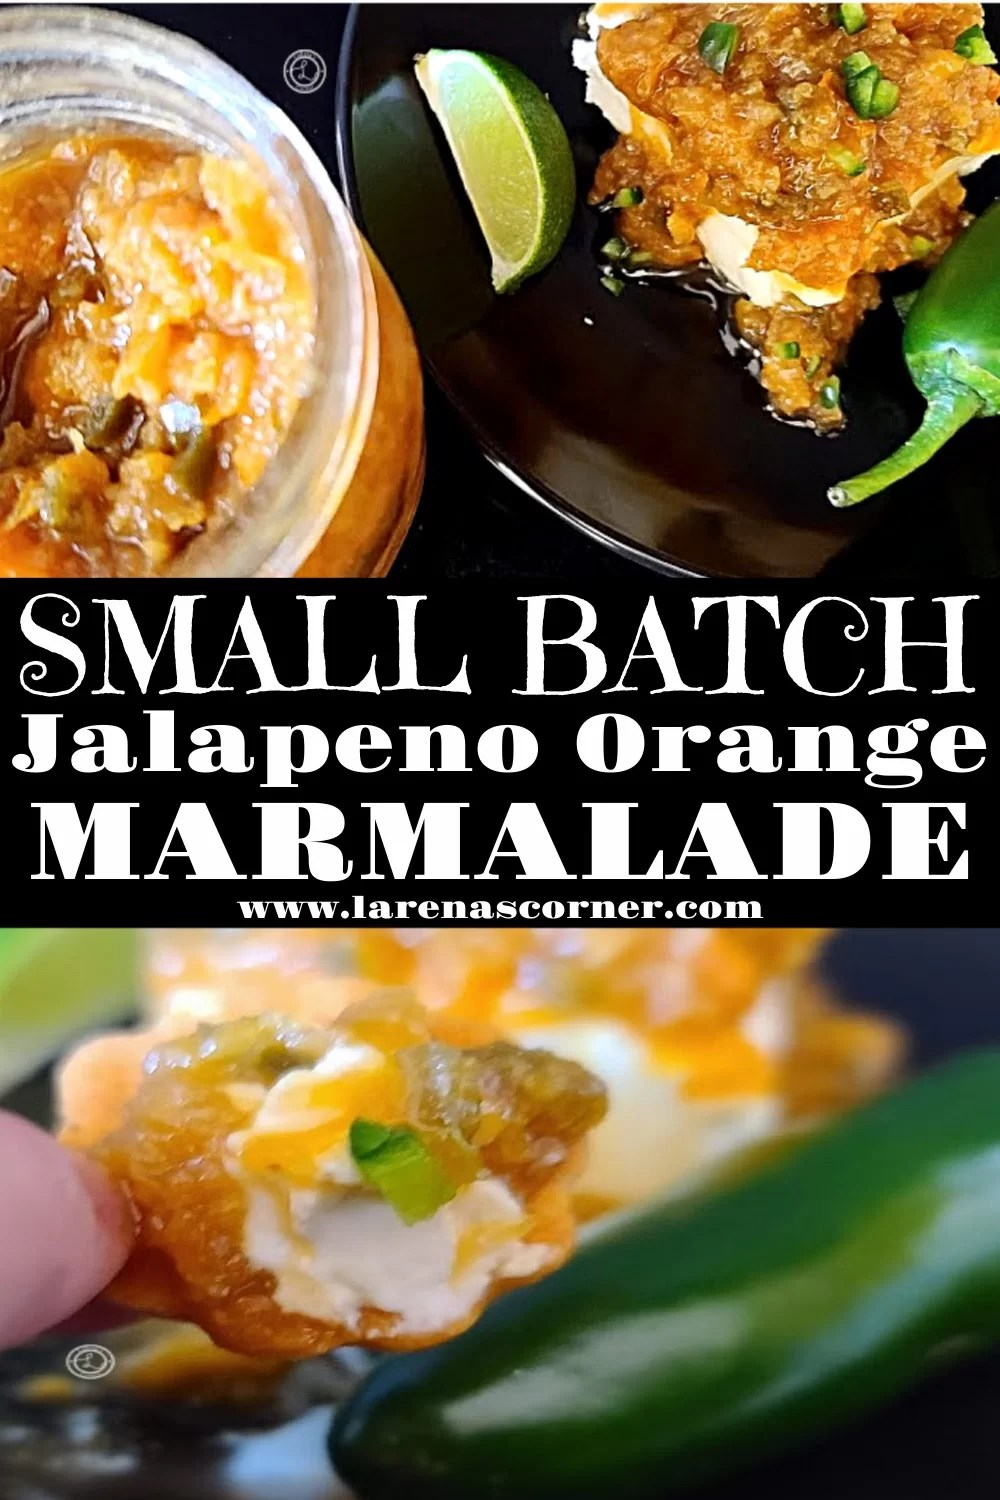 Two pictures of Small Batch Jalapeno Orange Marmalade